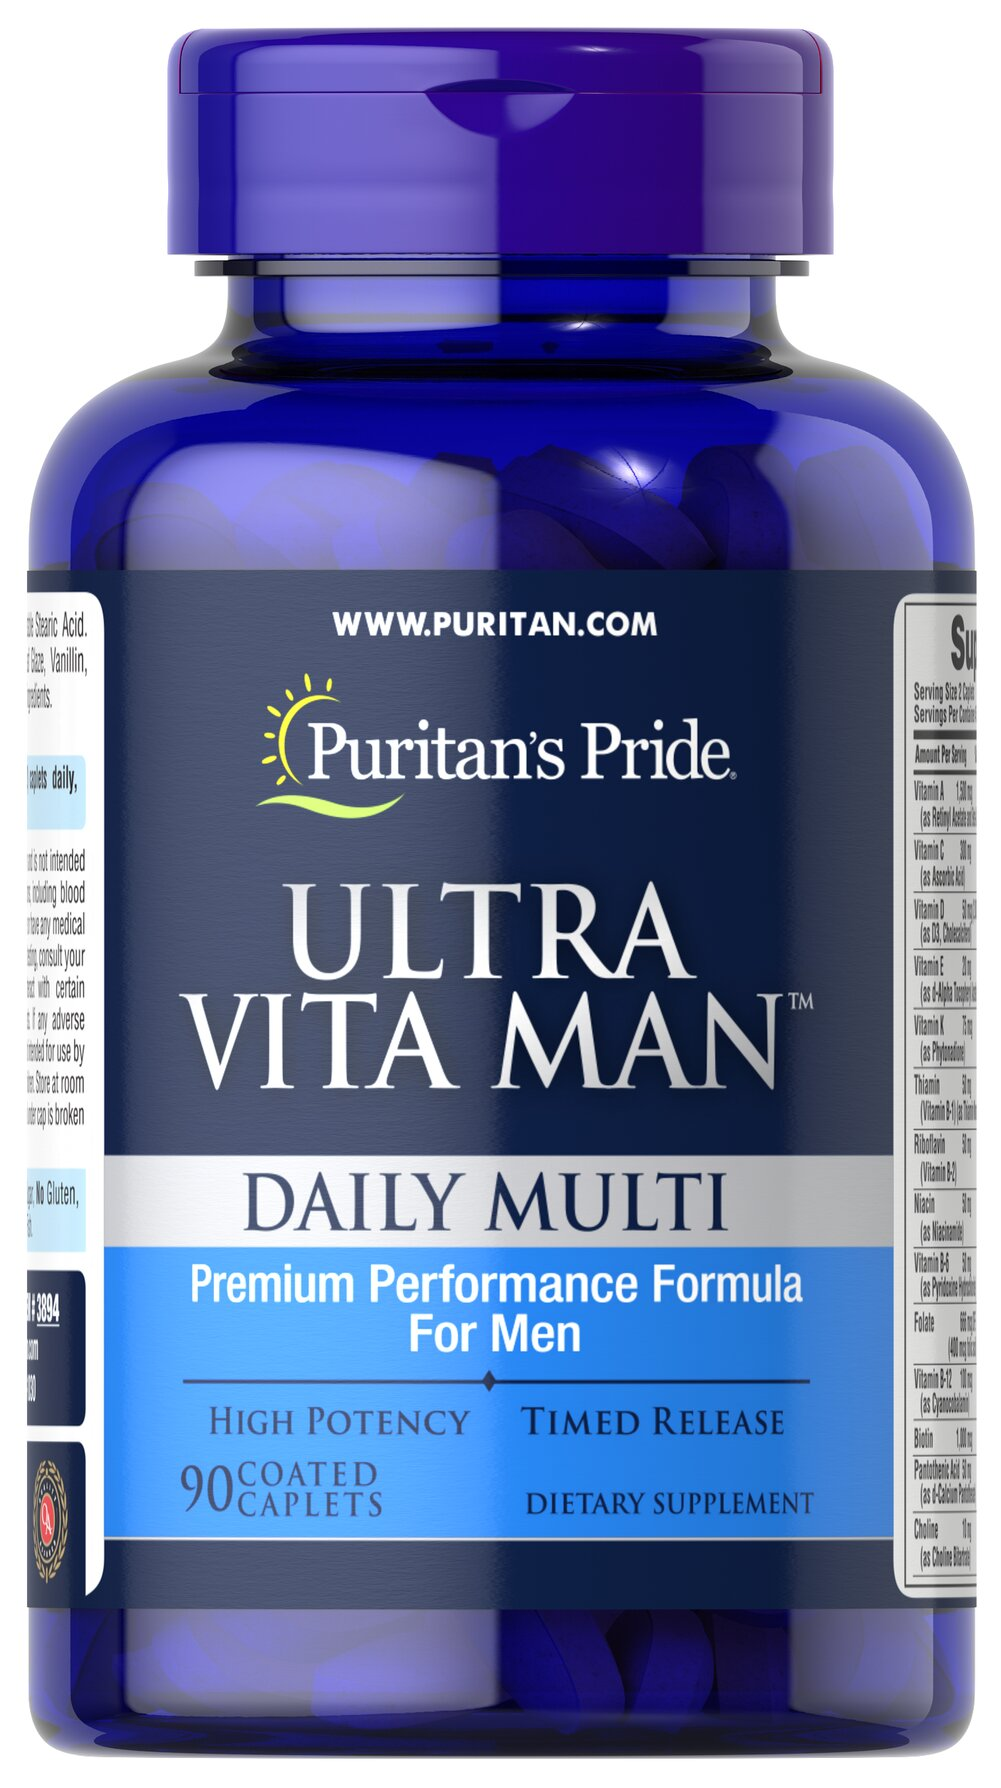 Ultra Vita Man™ Time Release <p>This time release multivitamins  delivers vitamins and minerals shown to be beneficial to men's overall wellness. From antioxidant and immune support to cardiovascular health, Ultra Vita Man is ideal for today's on-the-go men!**</p> 90 Caplets  $27.79